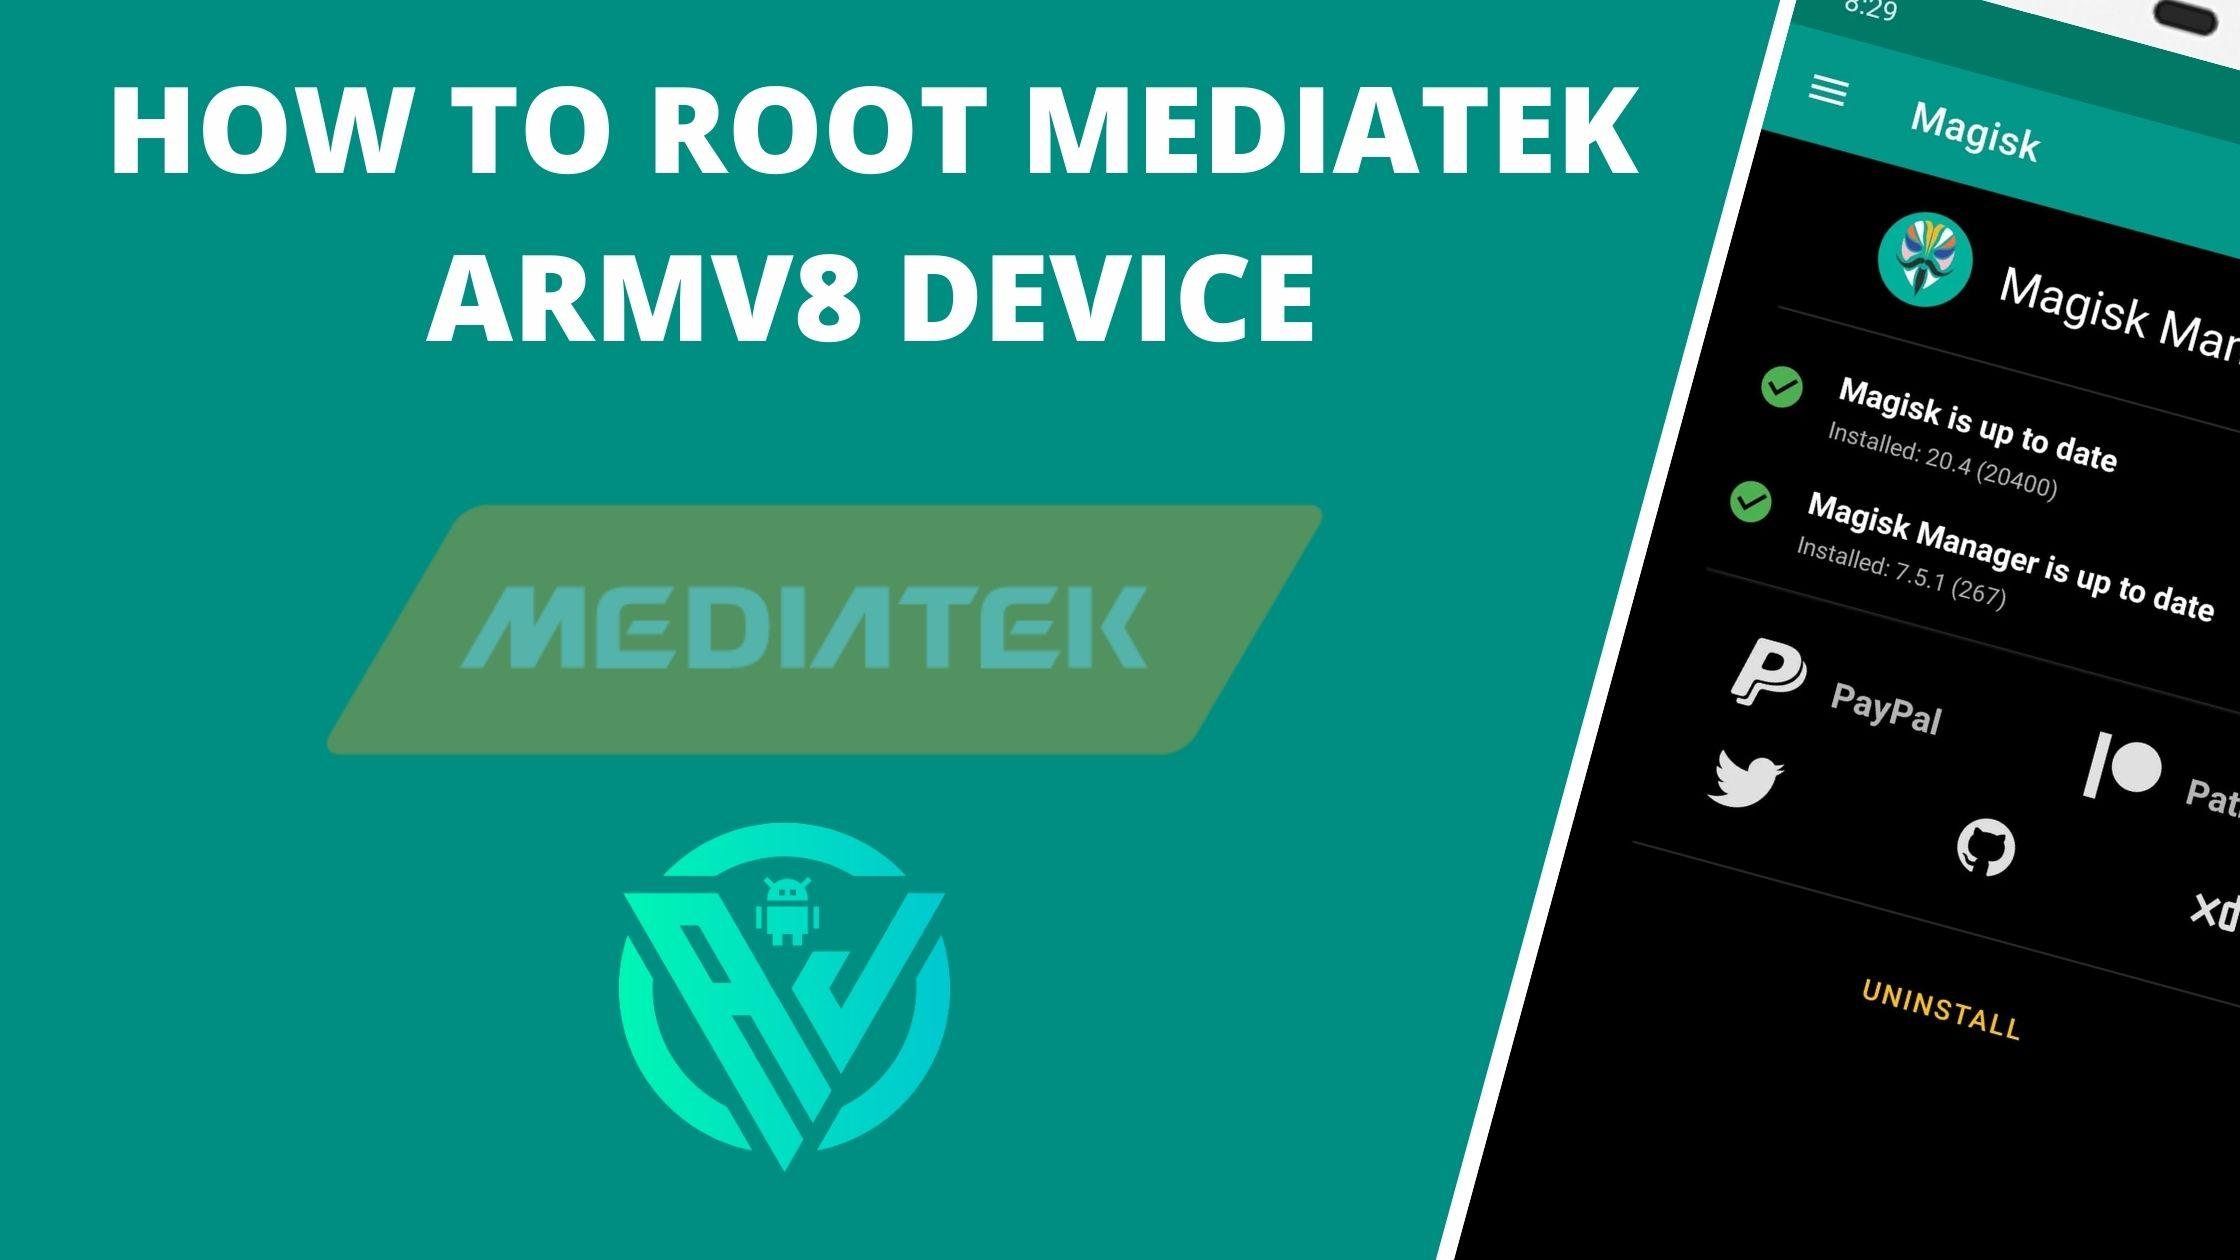 root mediatek armv8 device